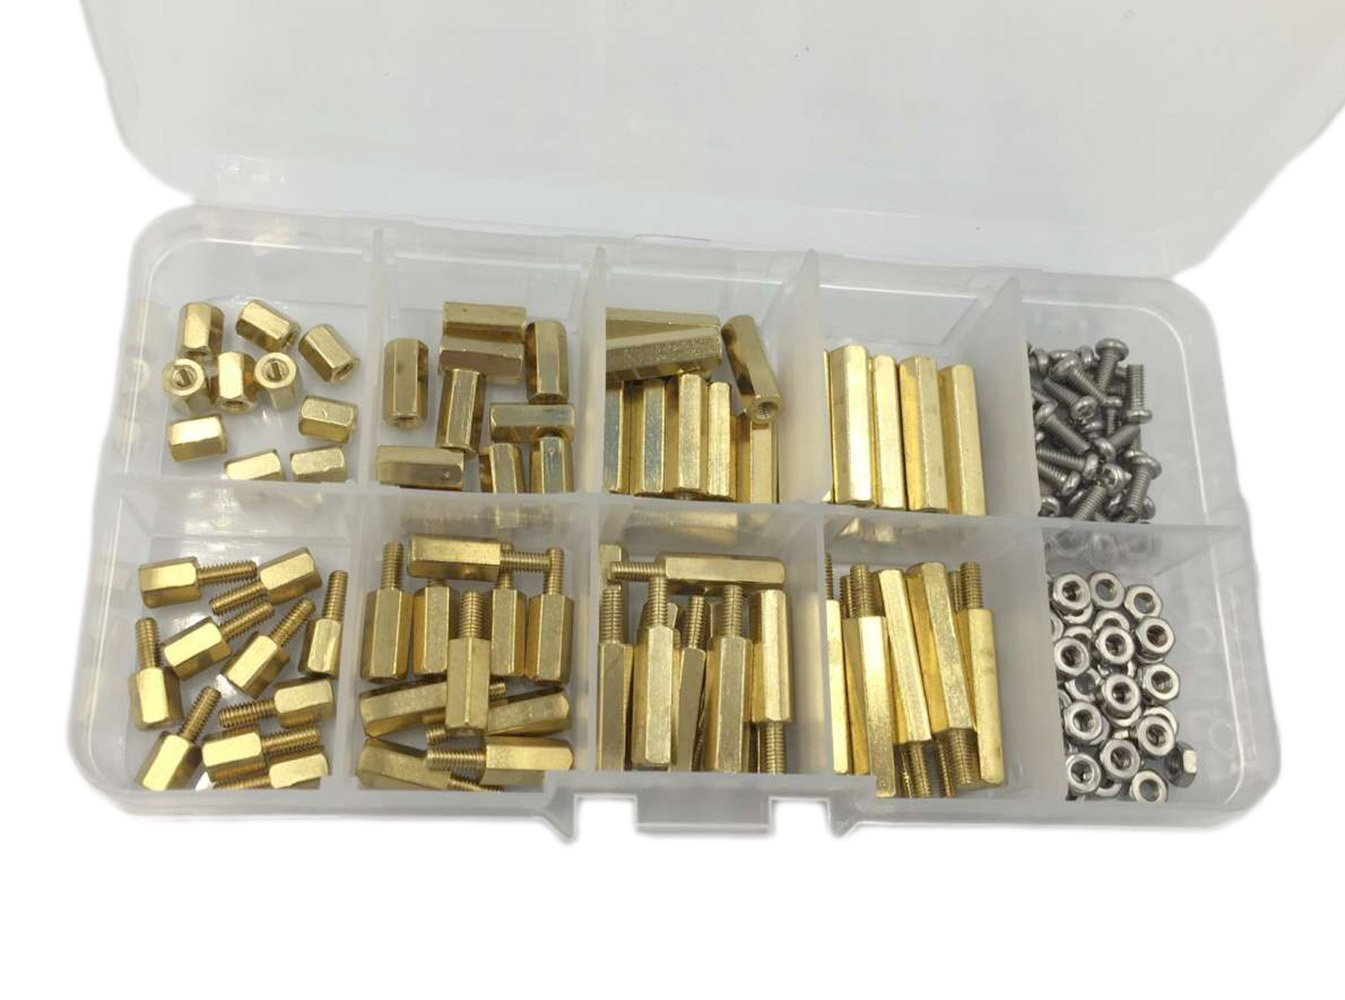 HVAZI 160PCS M2.5 Brass Spacer Standoff/Stainless Steel Screw/Nut Assortment Kit,Male-Female